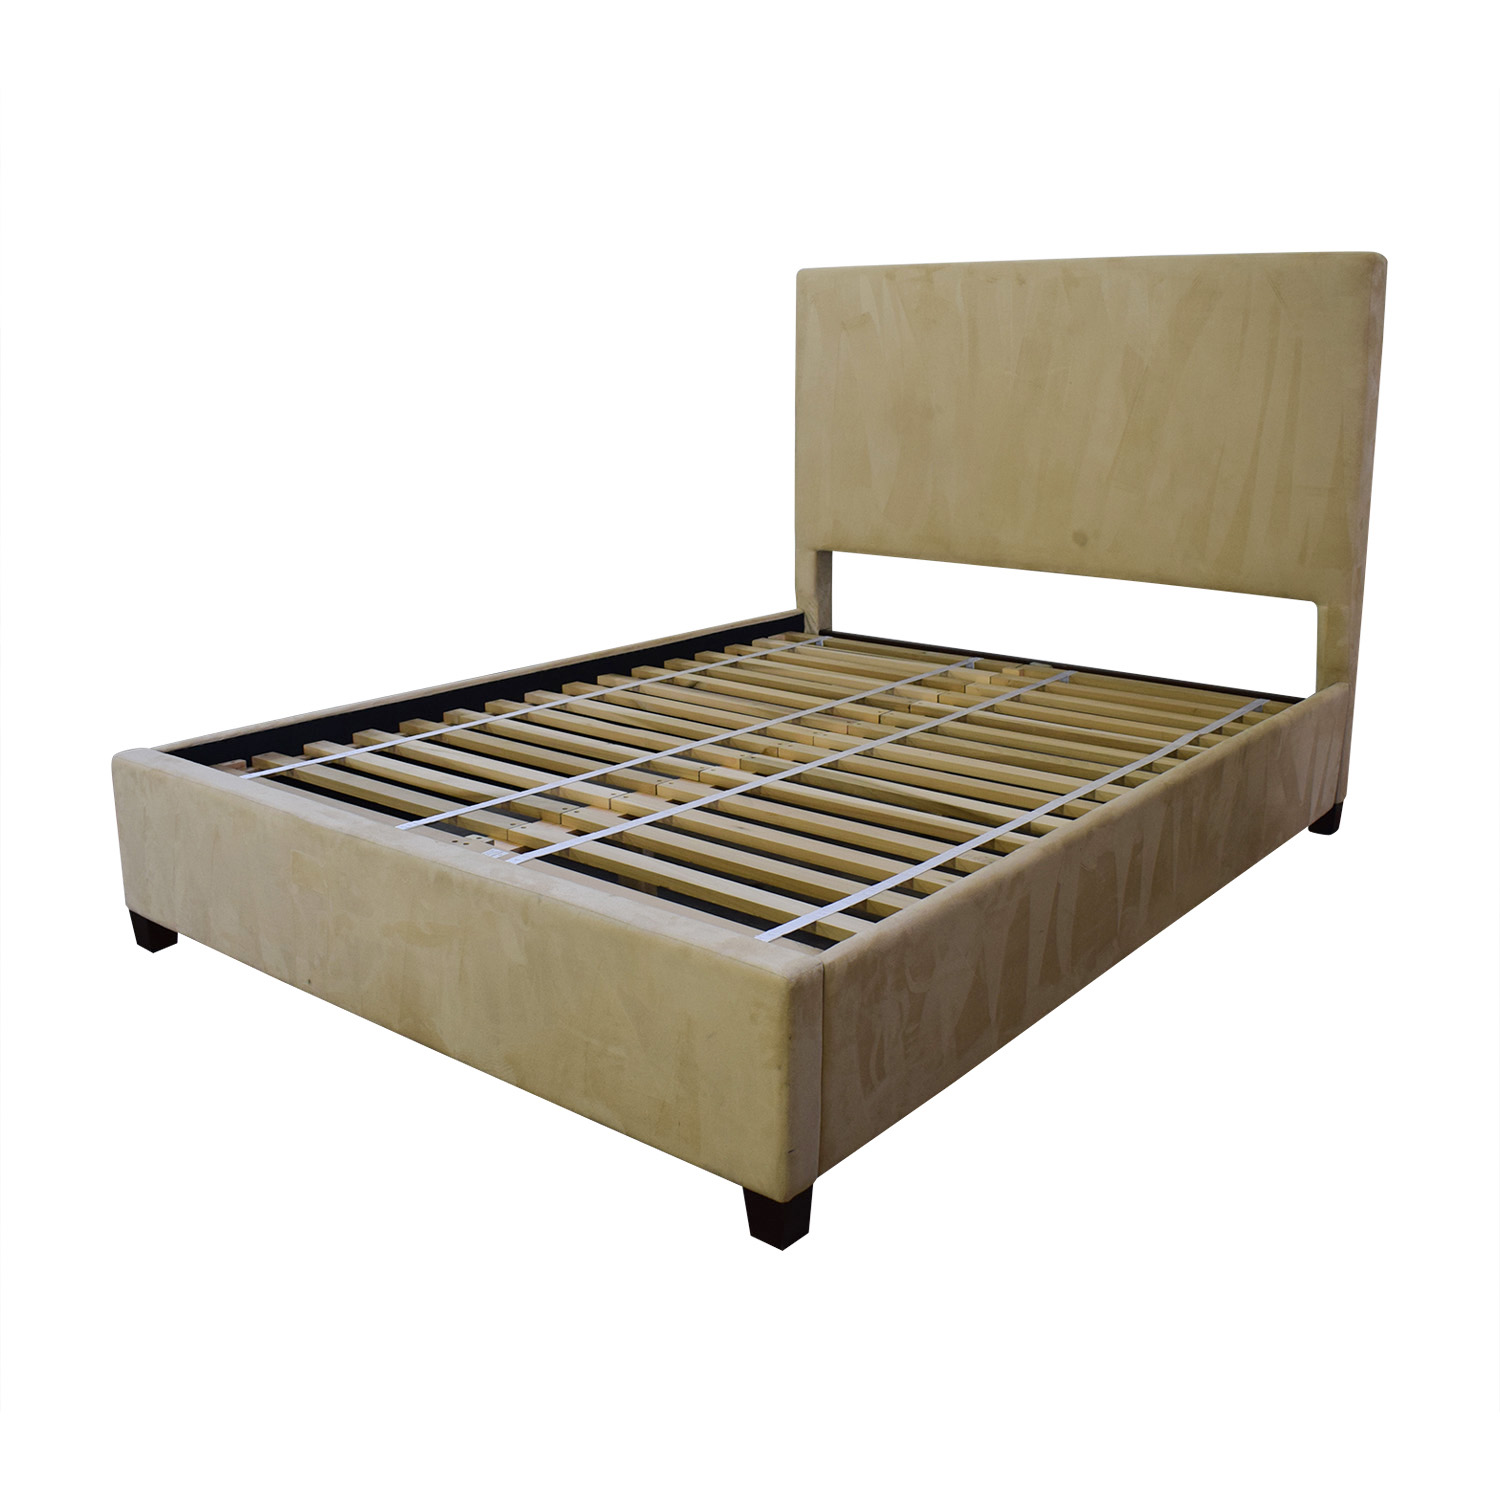 wordpress similar simplymadebyrebecca raleigh beds upholstered bed and platform by pottery barn com pin the to barns diy